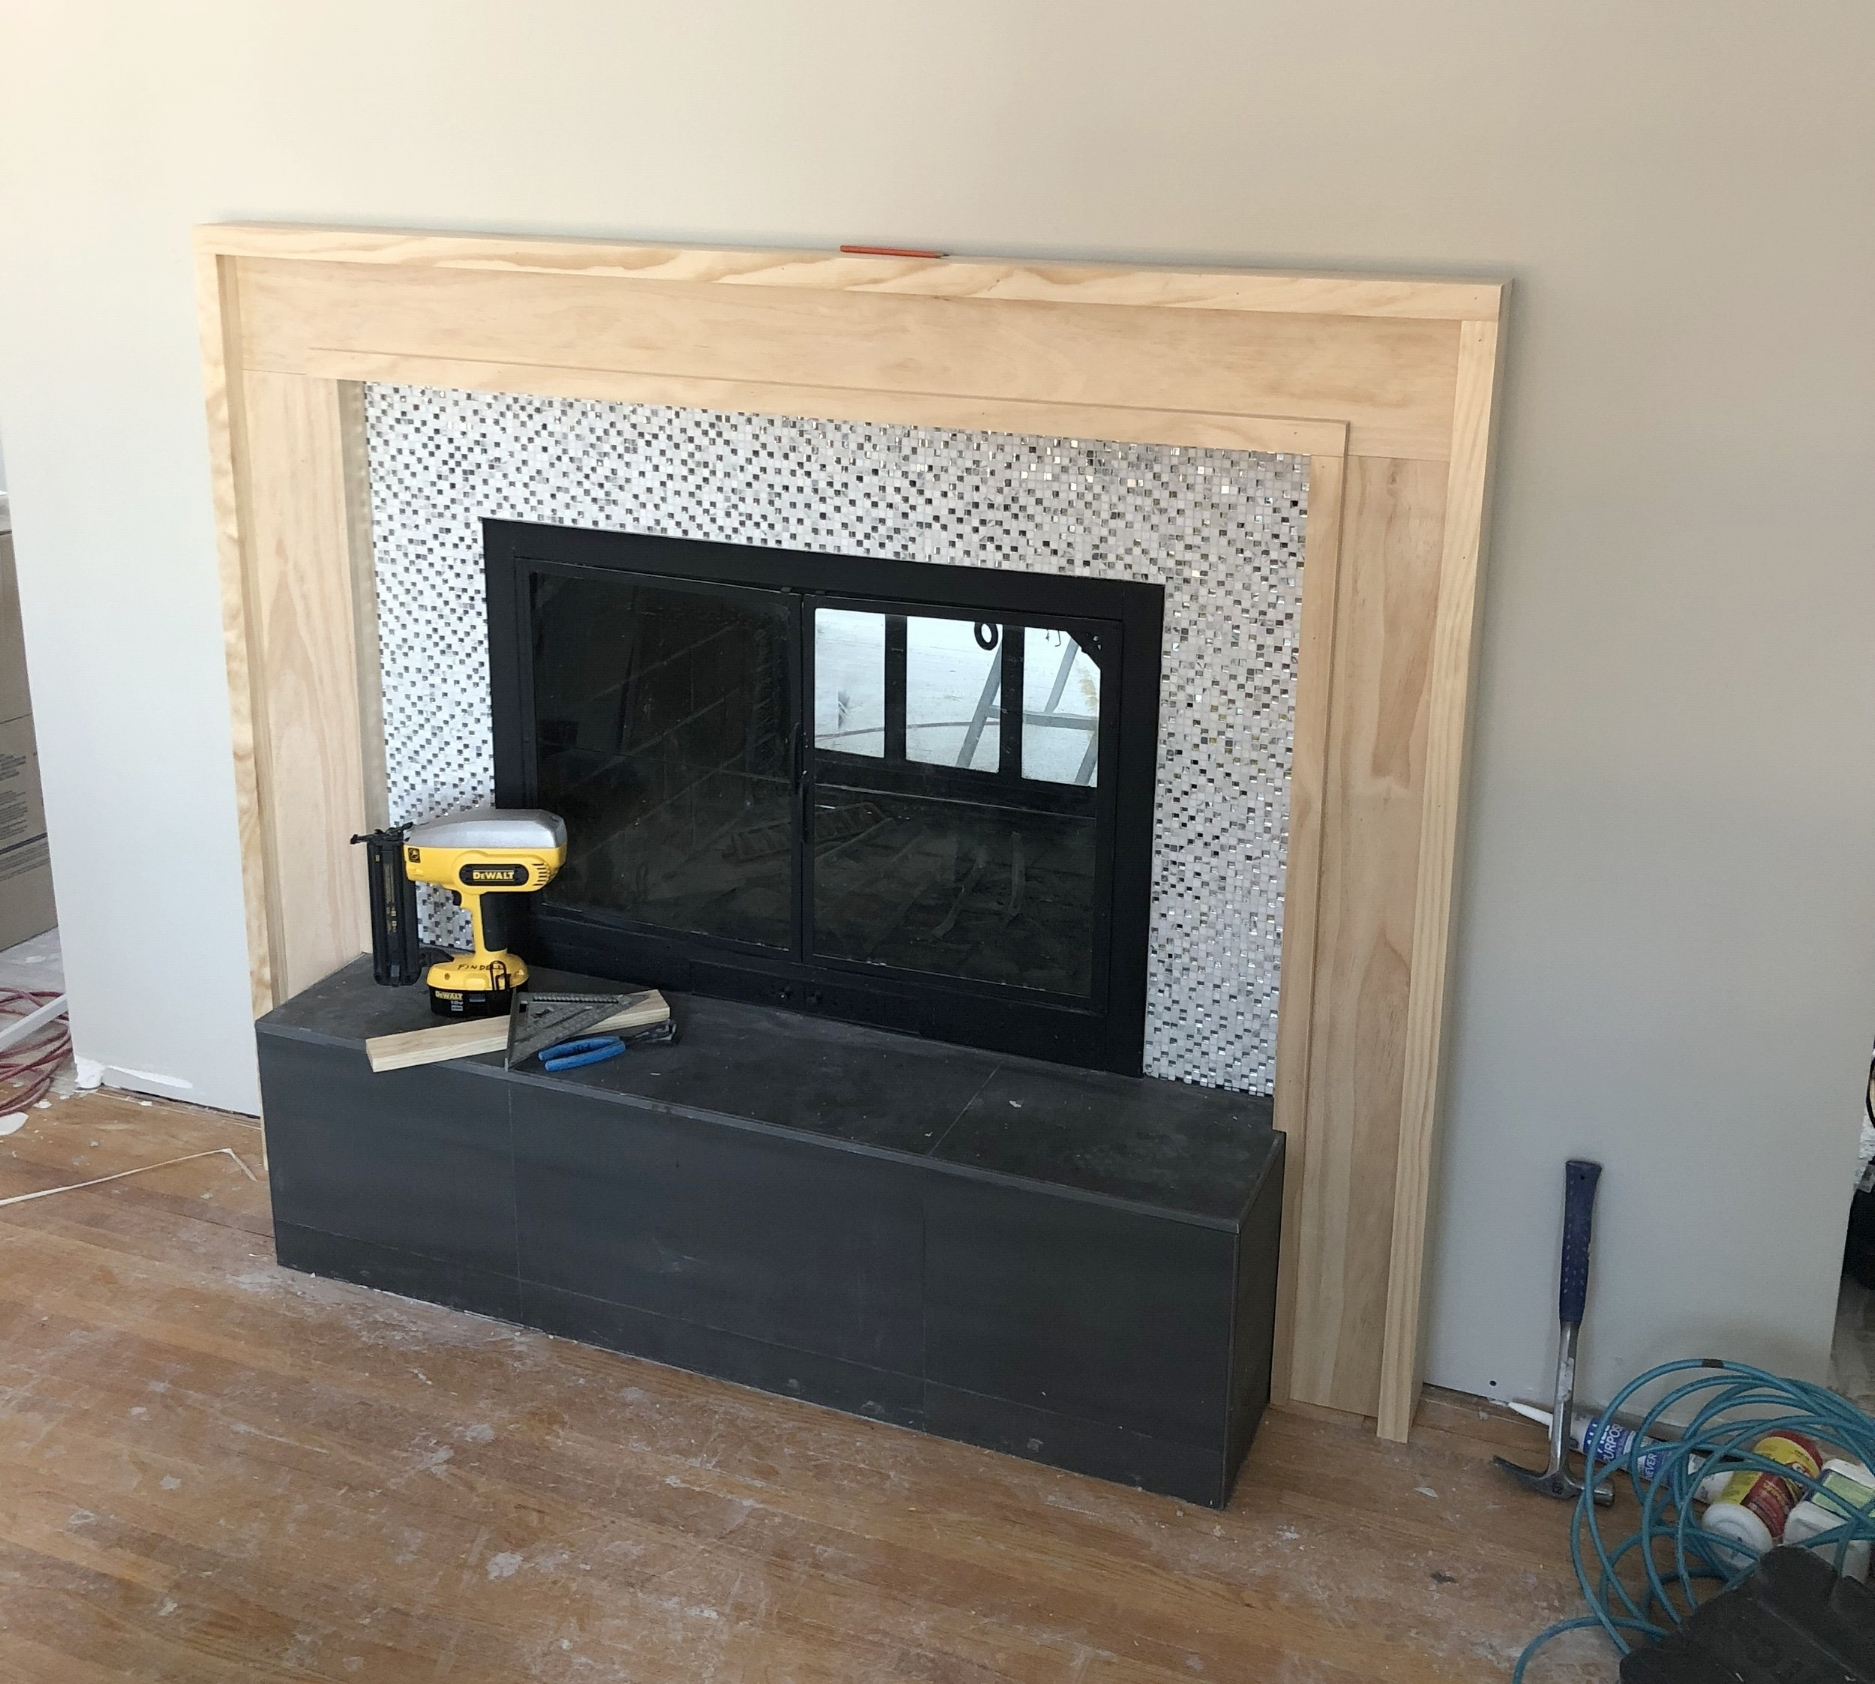 How to Build a Modern Fireplace Mantel - Step Four